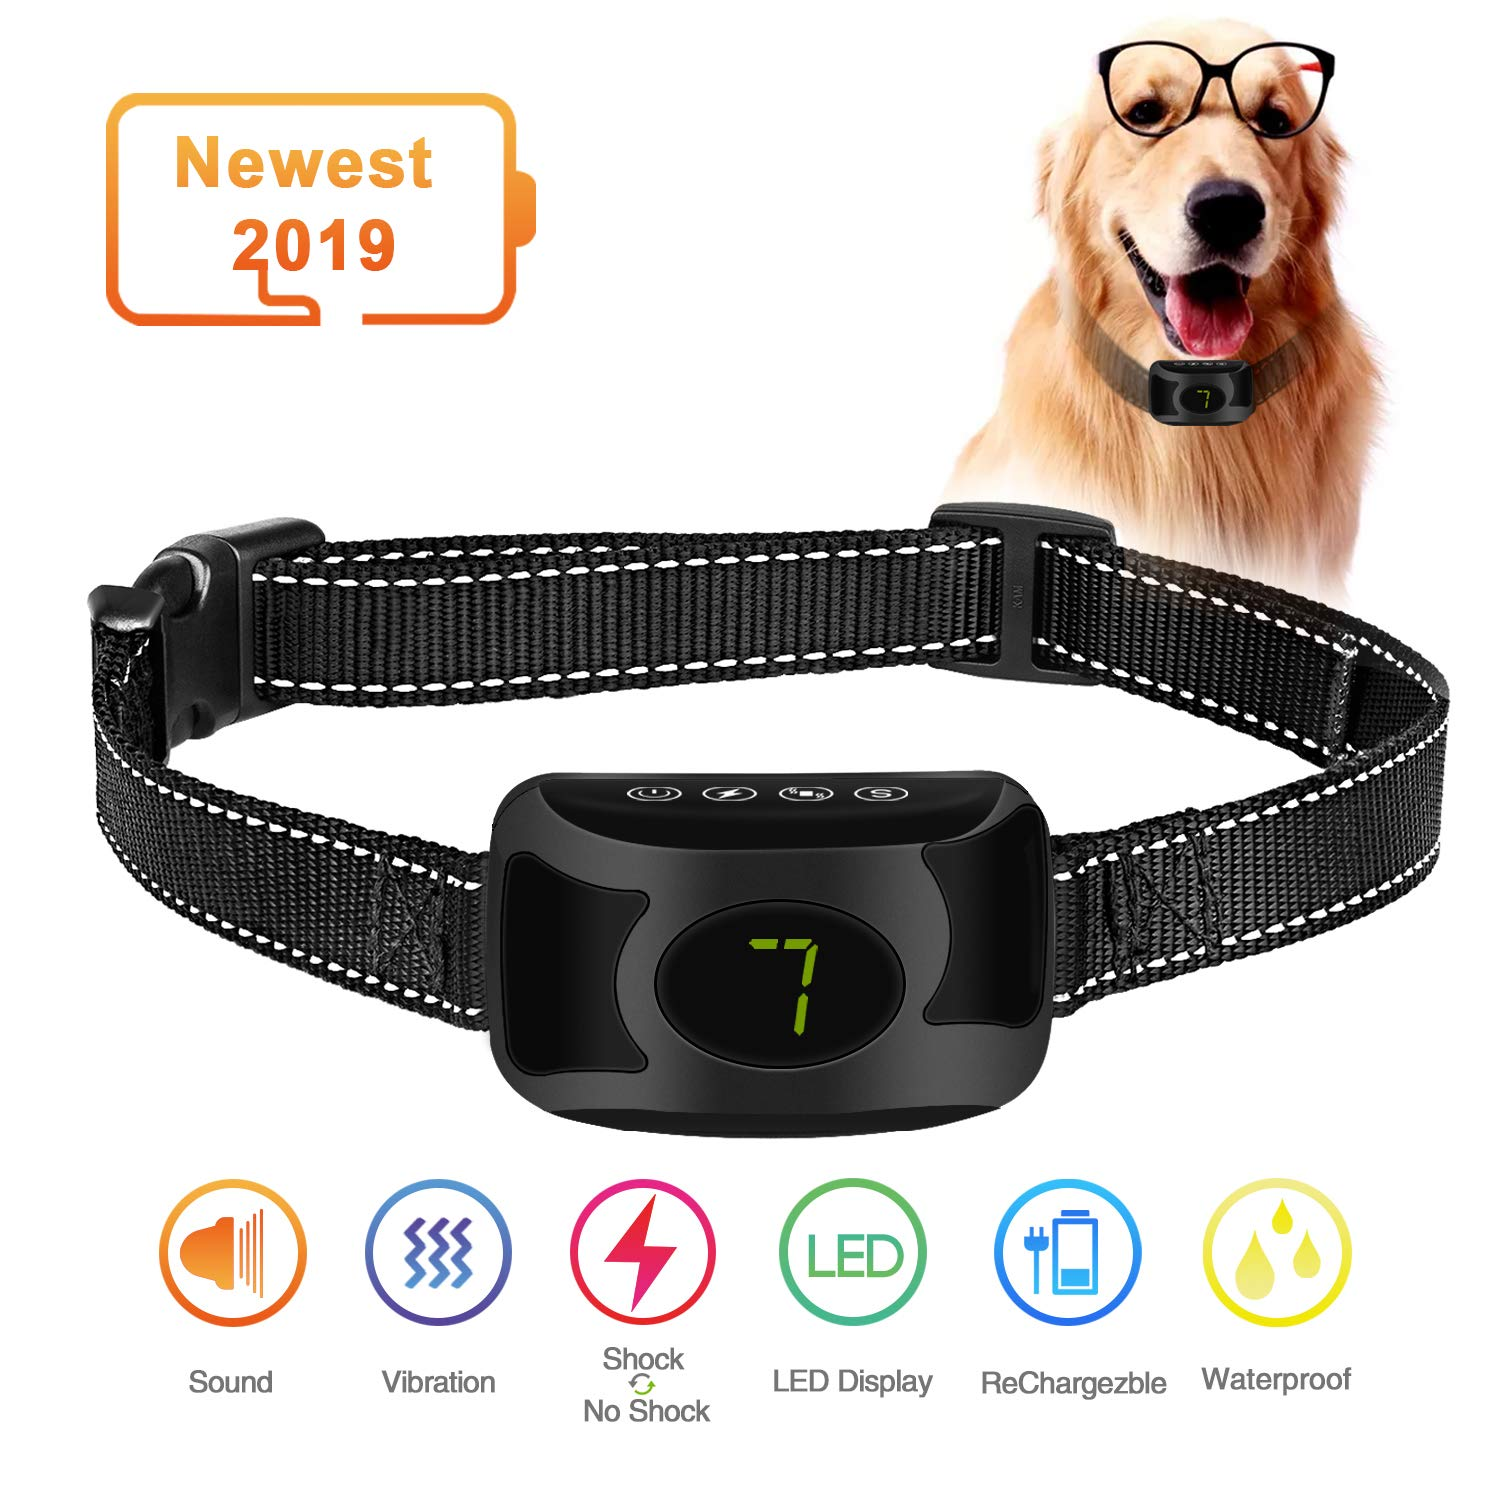 Smiler+ 2019 New Bark Collar, Dog No Bark Training Collar with Beep Vibration and Harmless Shock with 4 Adjustable Levels, Waterproof Rechargeable Anti Bark Device for Small,Medium,Large Dogs